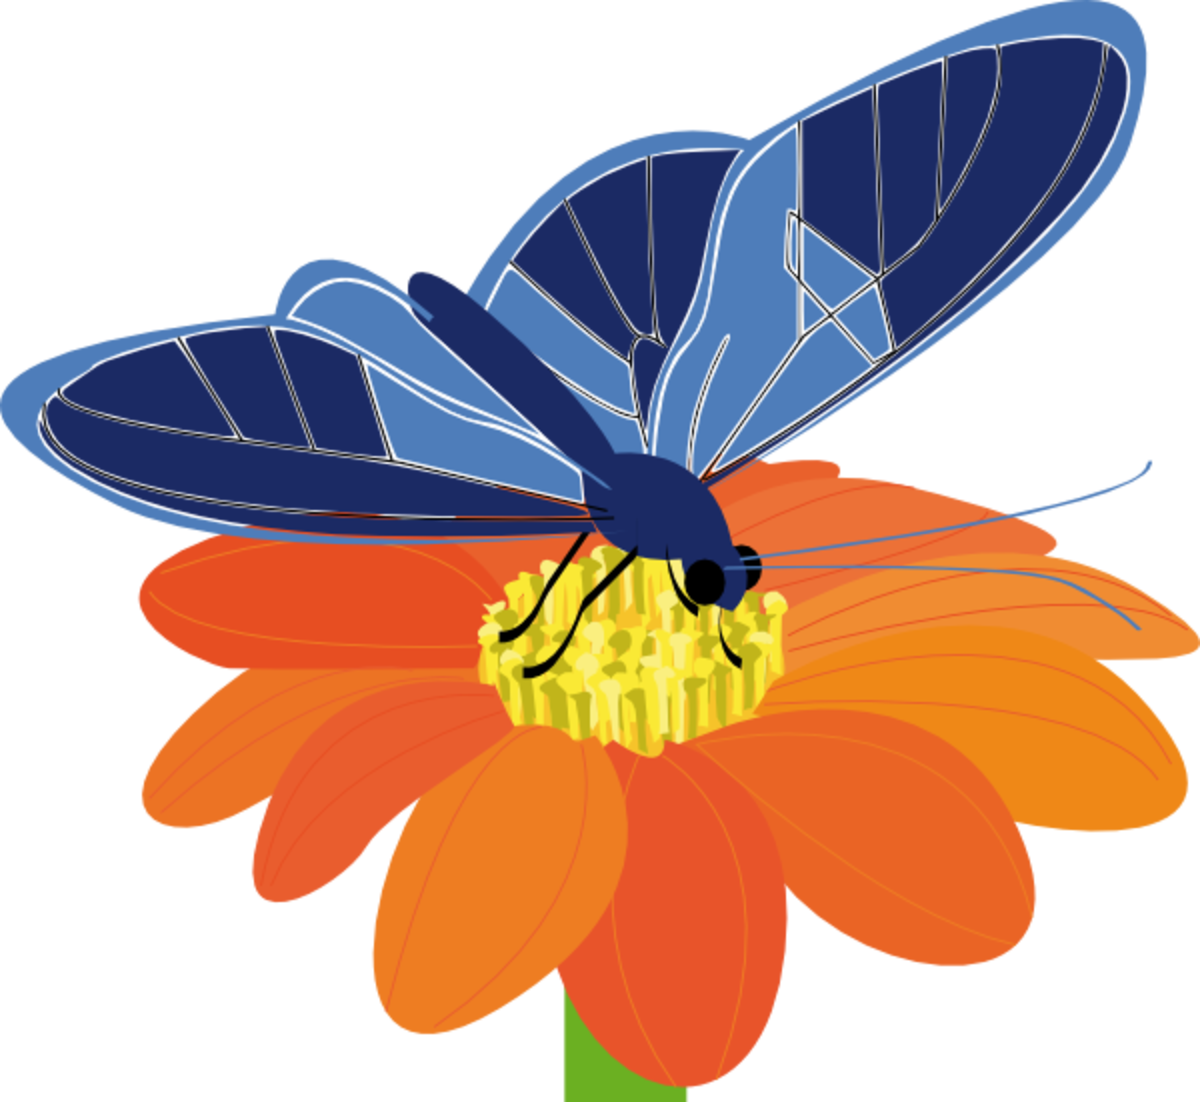 Blue Butterfly on Orange Flower